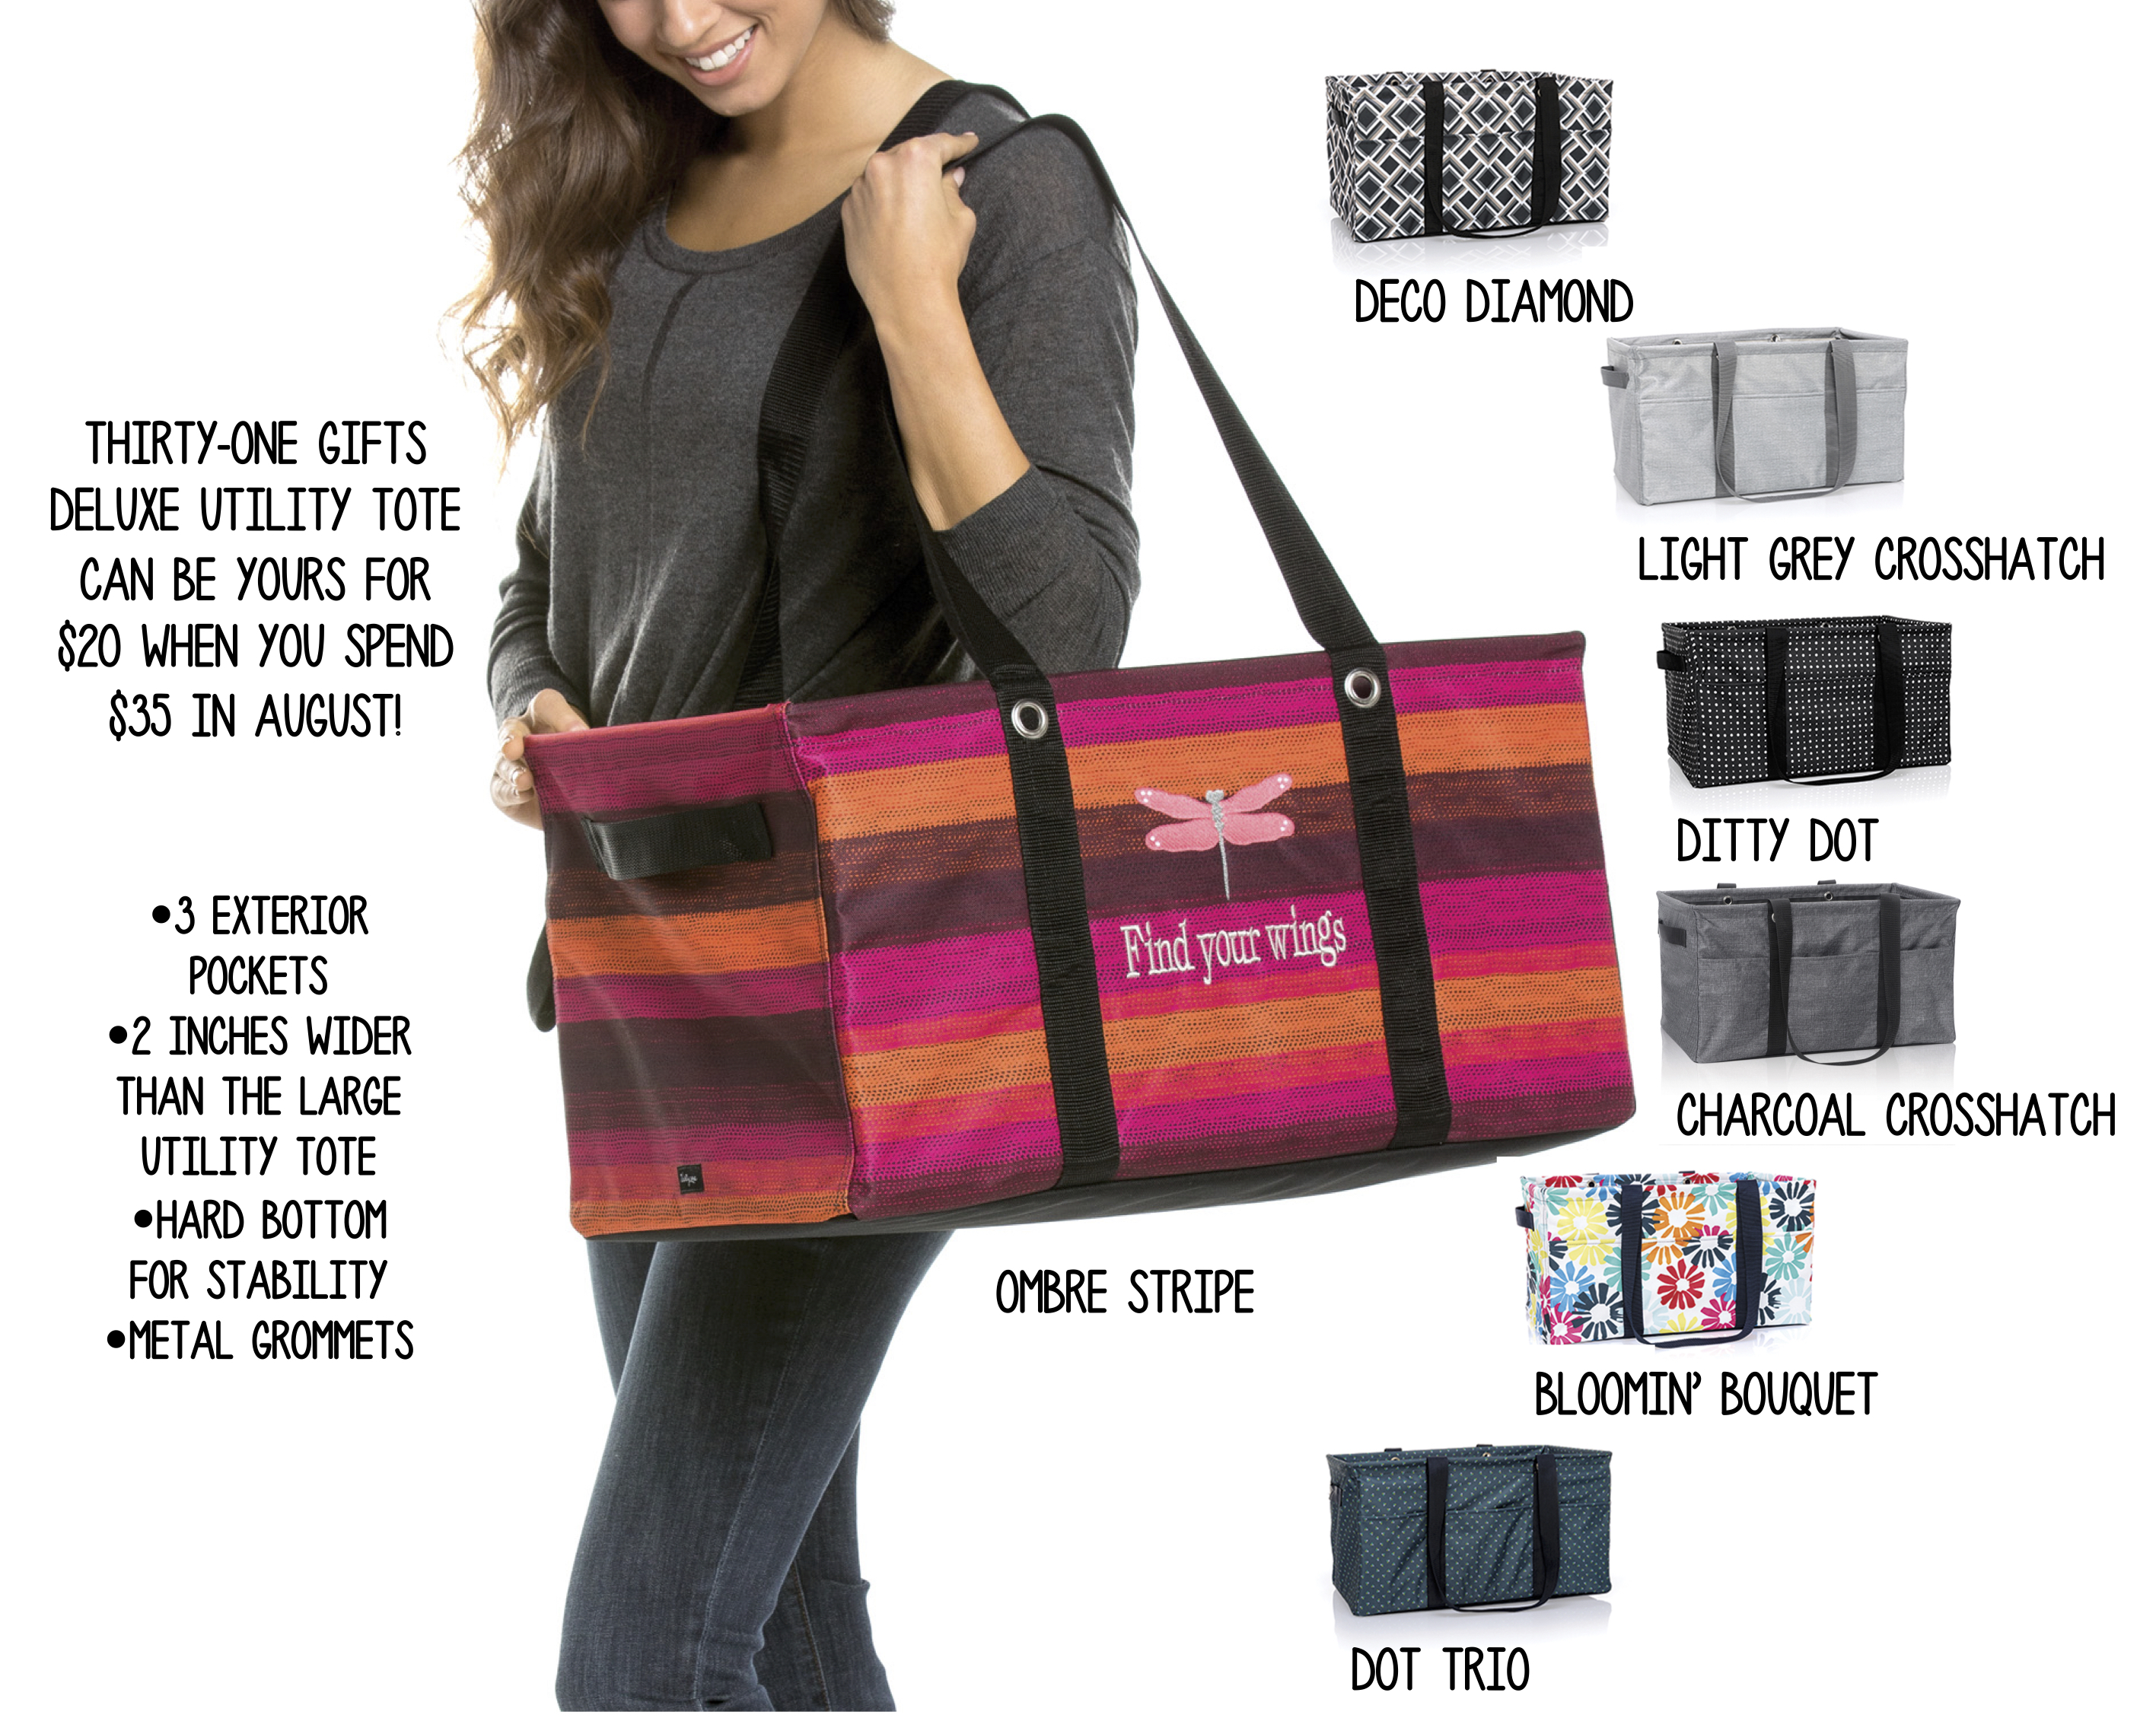 Thirty One Gifts Deluxe Utility Tote Team Hillenburg